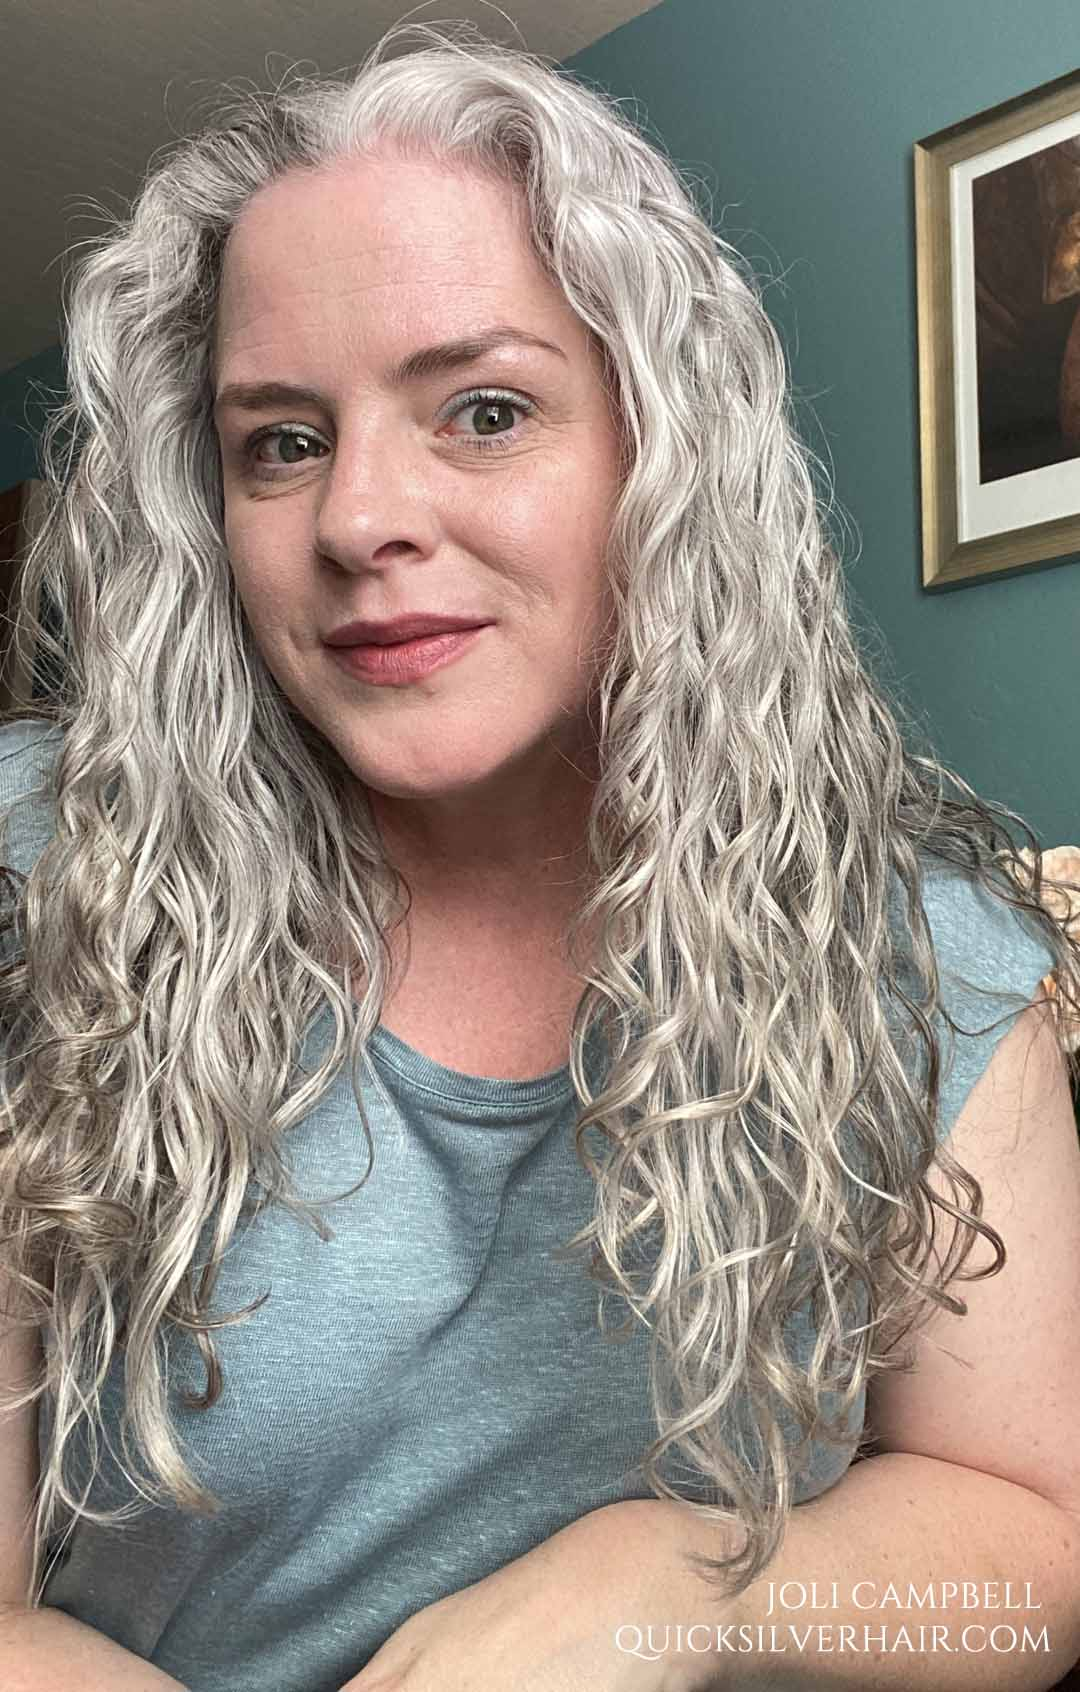 Joli after Loma Violet Shampoo and Conditioner